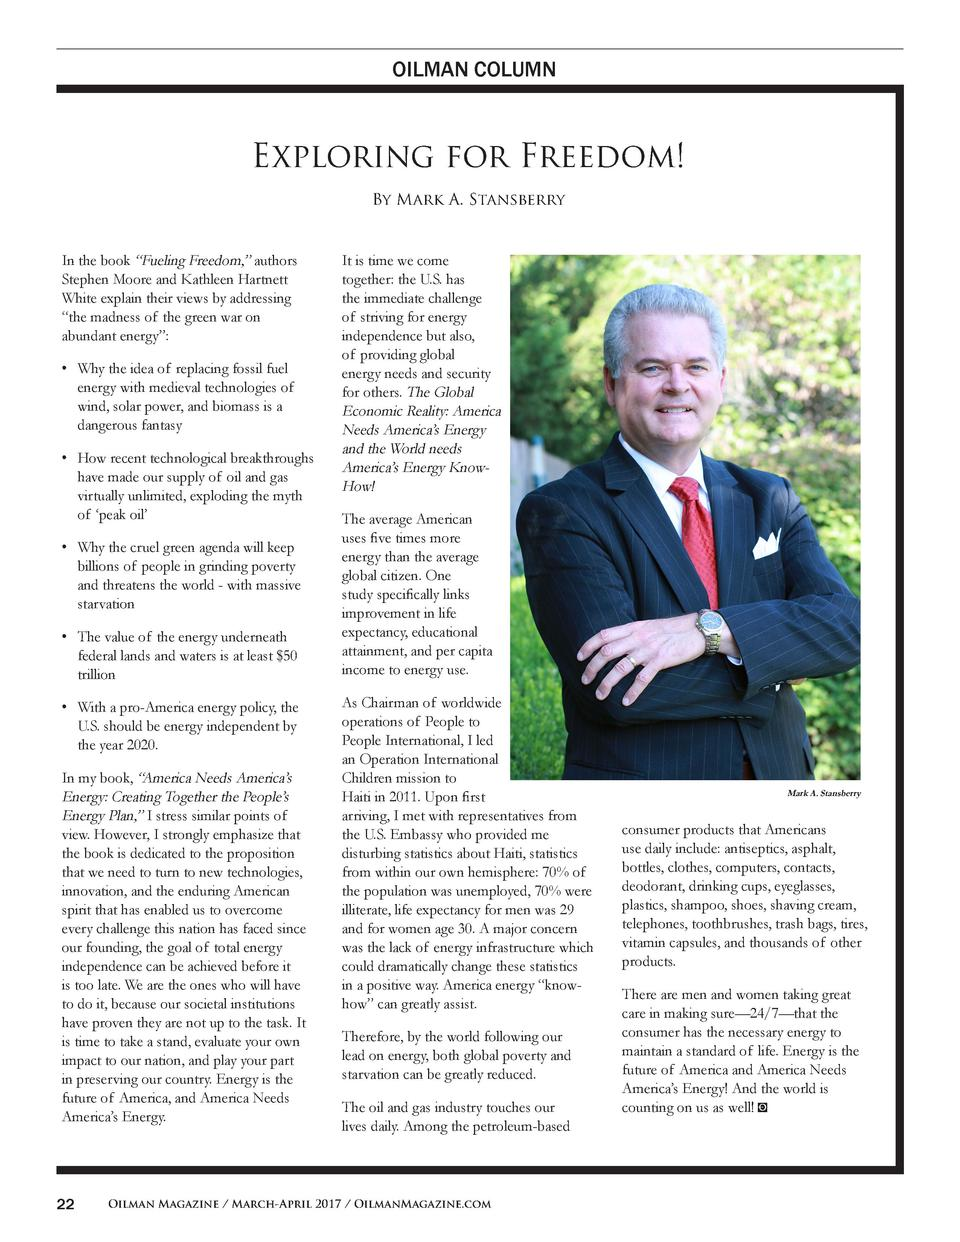 OILMAN COLUMN  Exploring for Freedom  By Mark A. Stansberry  In the book    Fueling Freedom,    authors Stephen Moore and ...